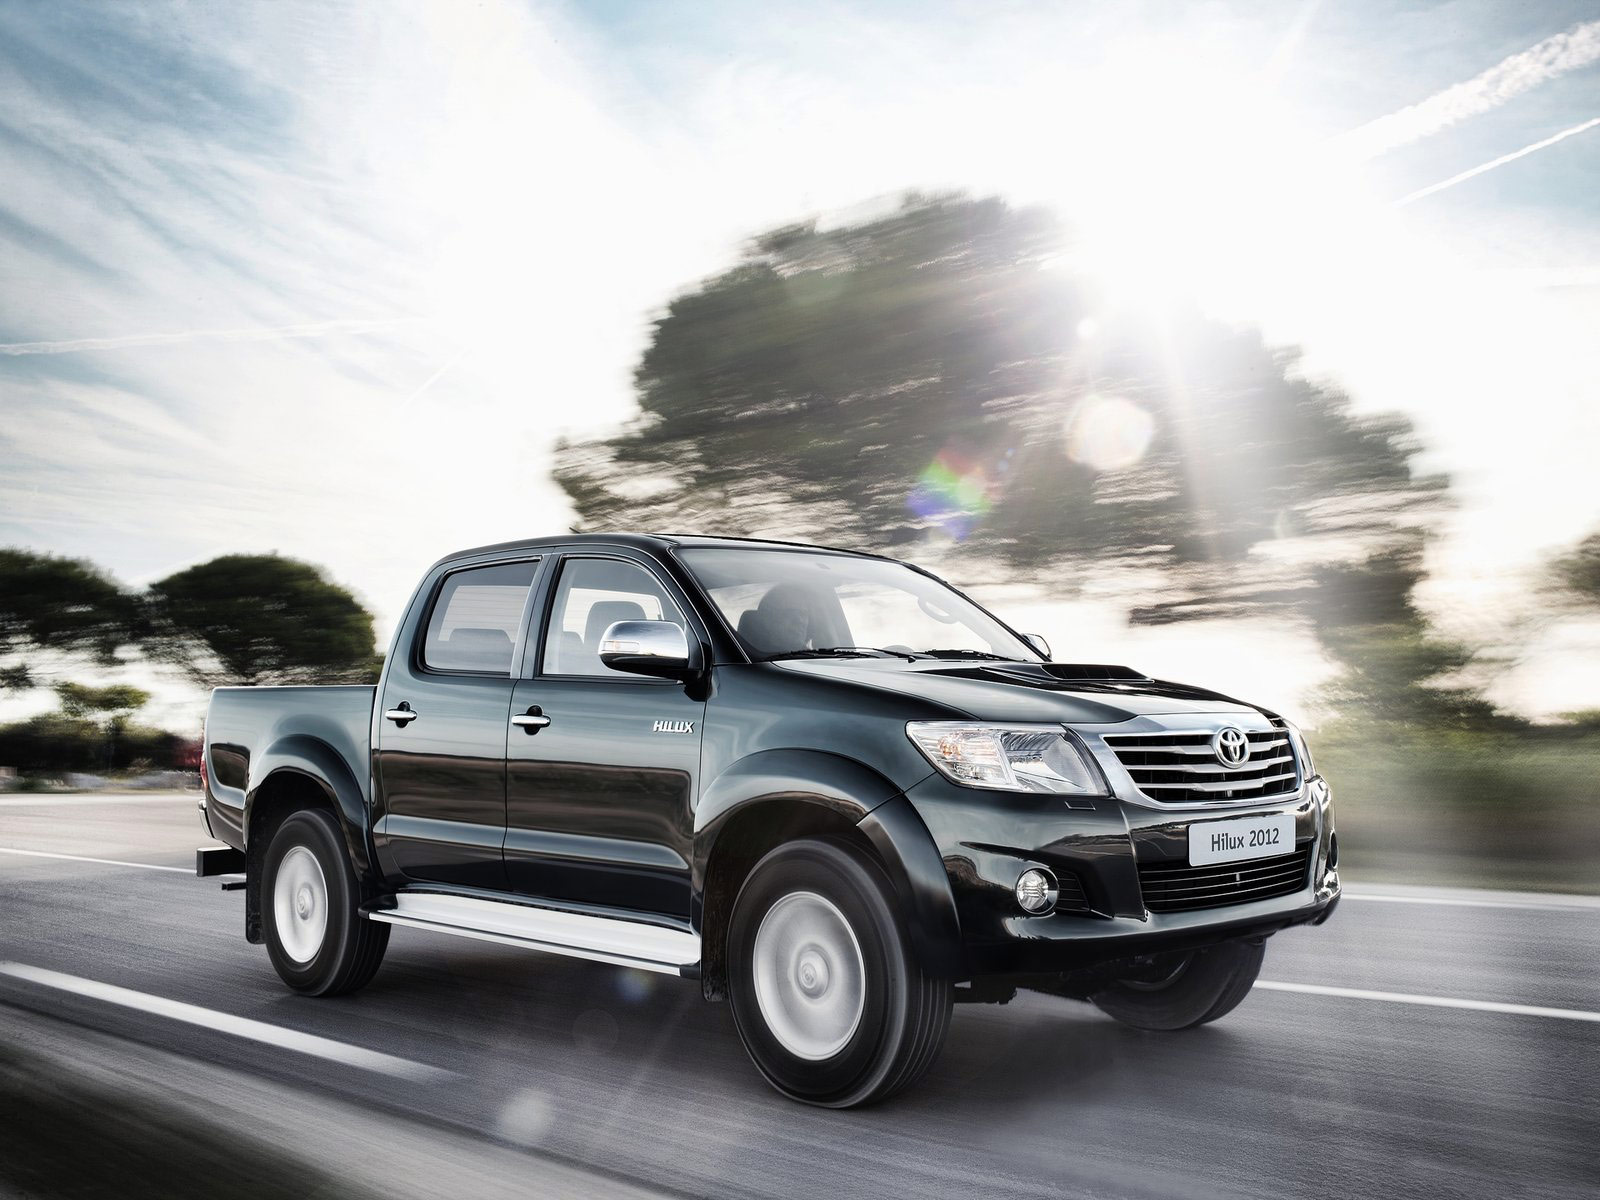 download-toyota-hilux-2012-wallpaper-car-pictures